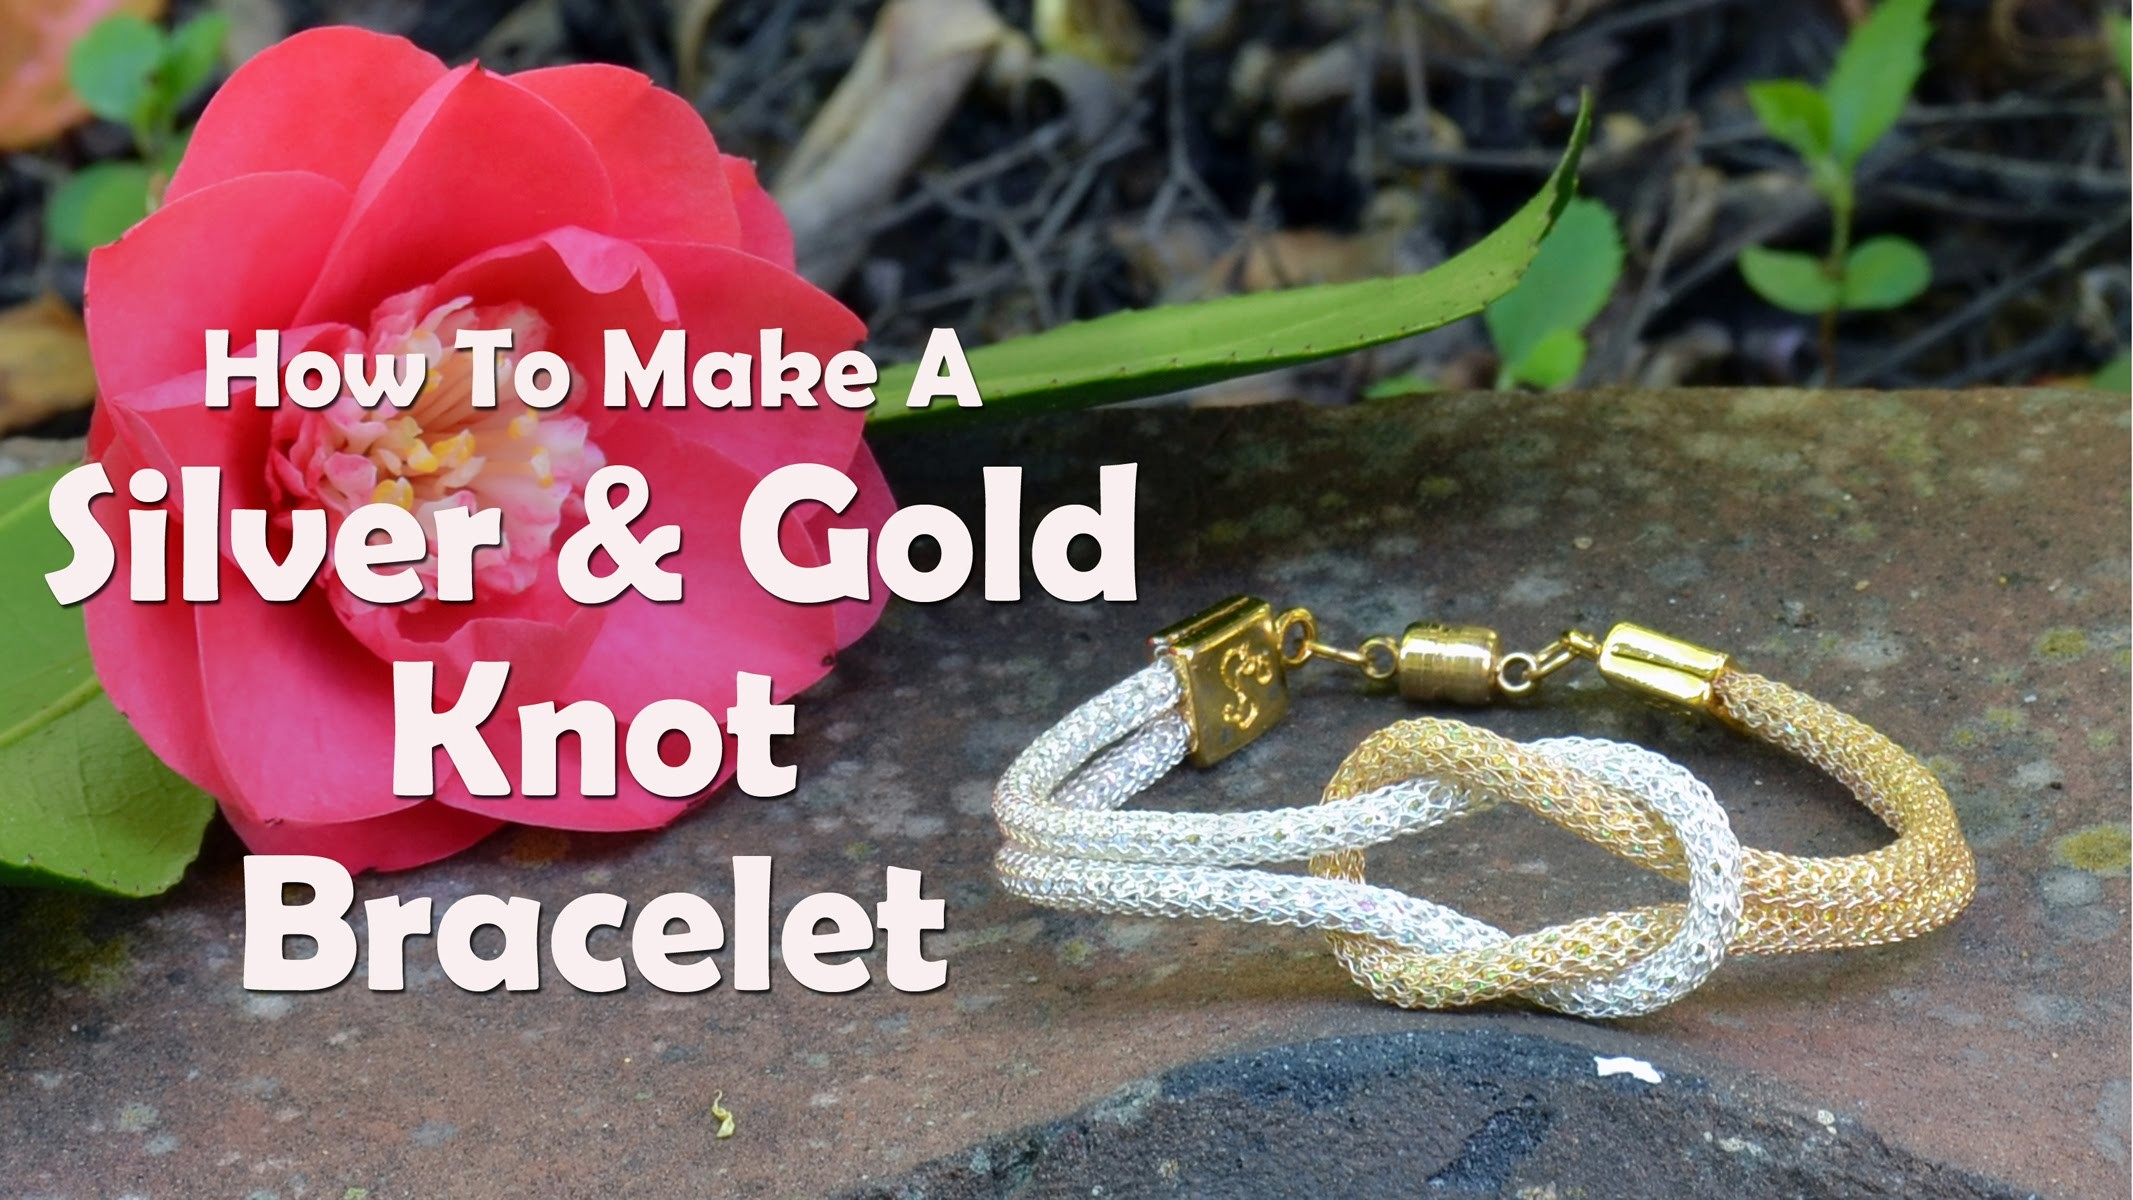 How To Make Jewelry: How To Make A Silver & Gold Knot Bracelet